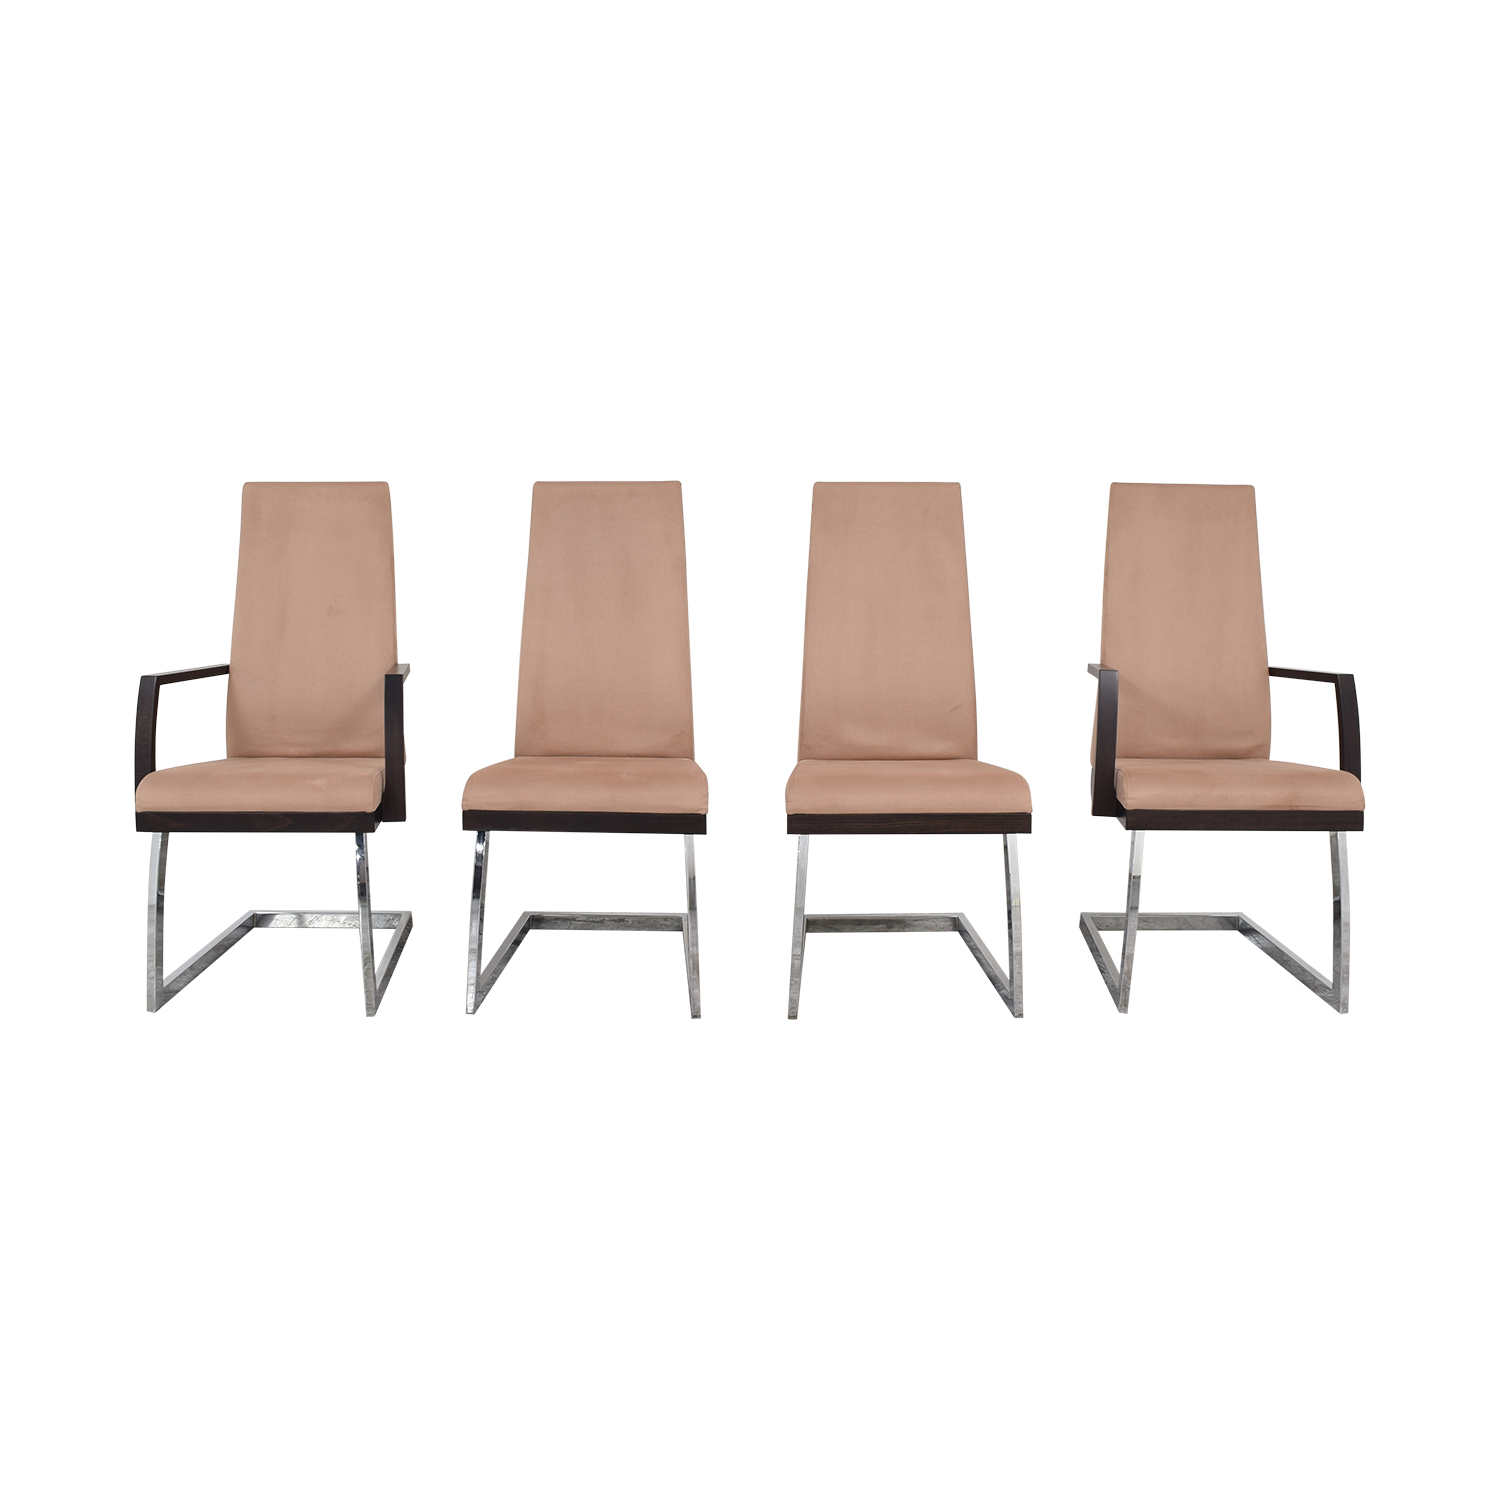 Costantini Pietro Costantini Pietro Dining Chairs for sale